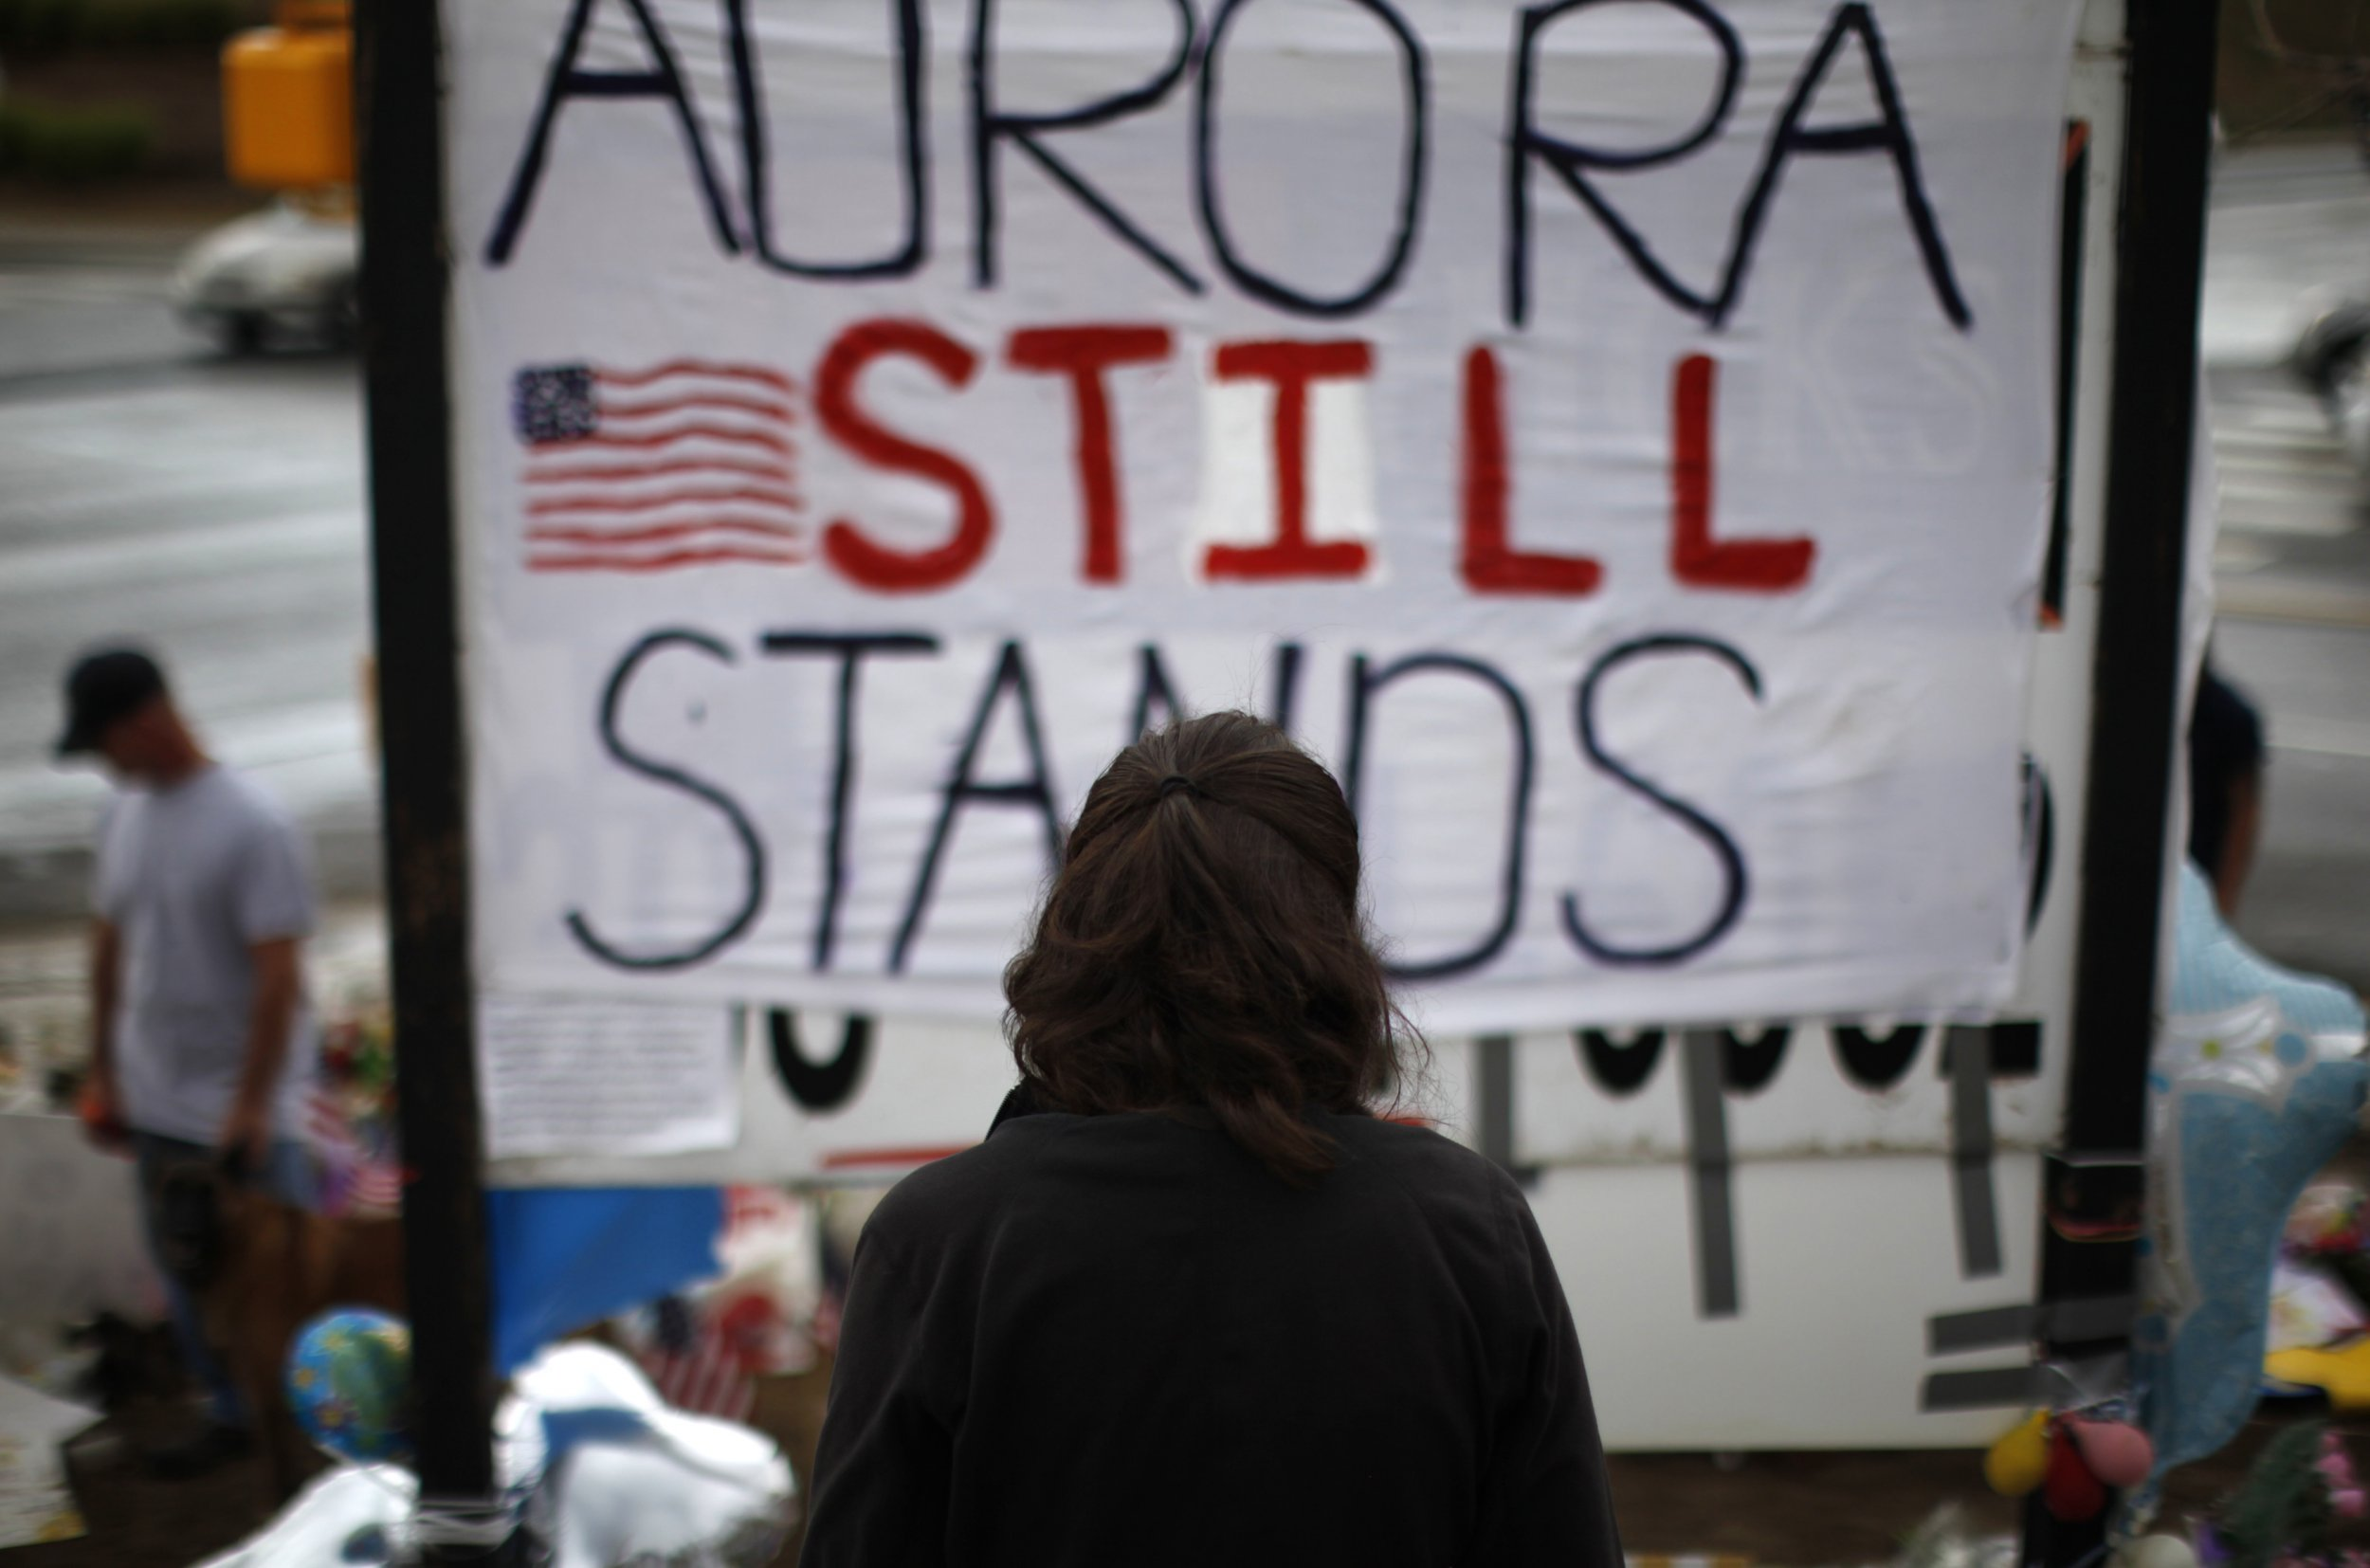 0719_Aurora_mass_shooting_01